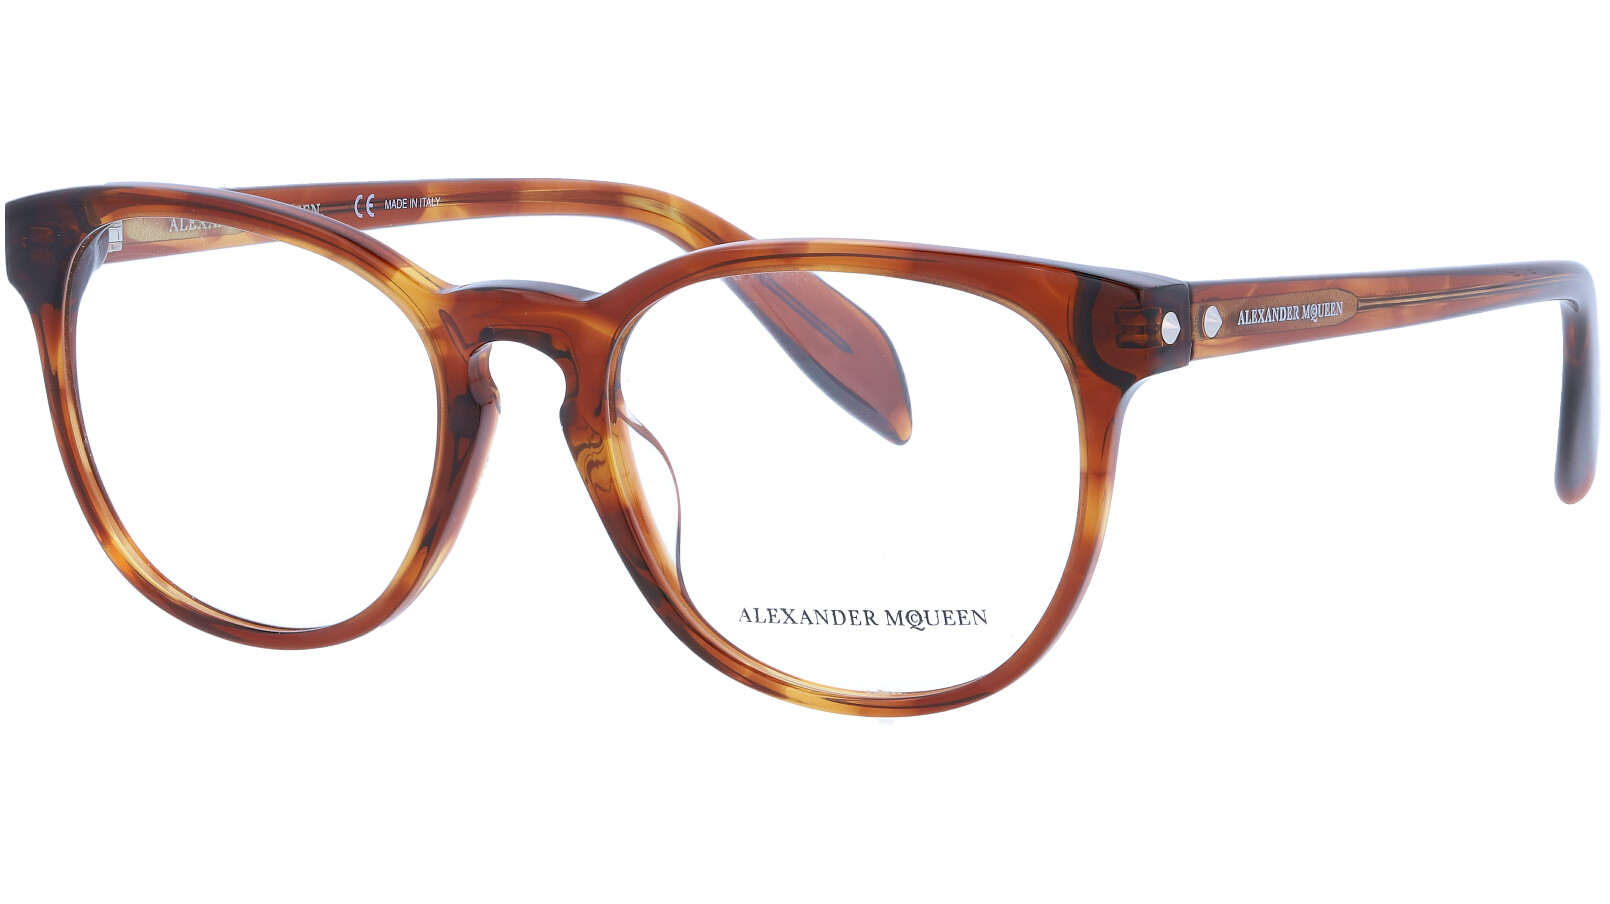 ALEXANDER MCQUEEN AM0100O 004 51 AVANA Glasses